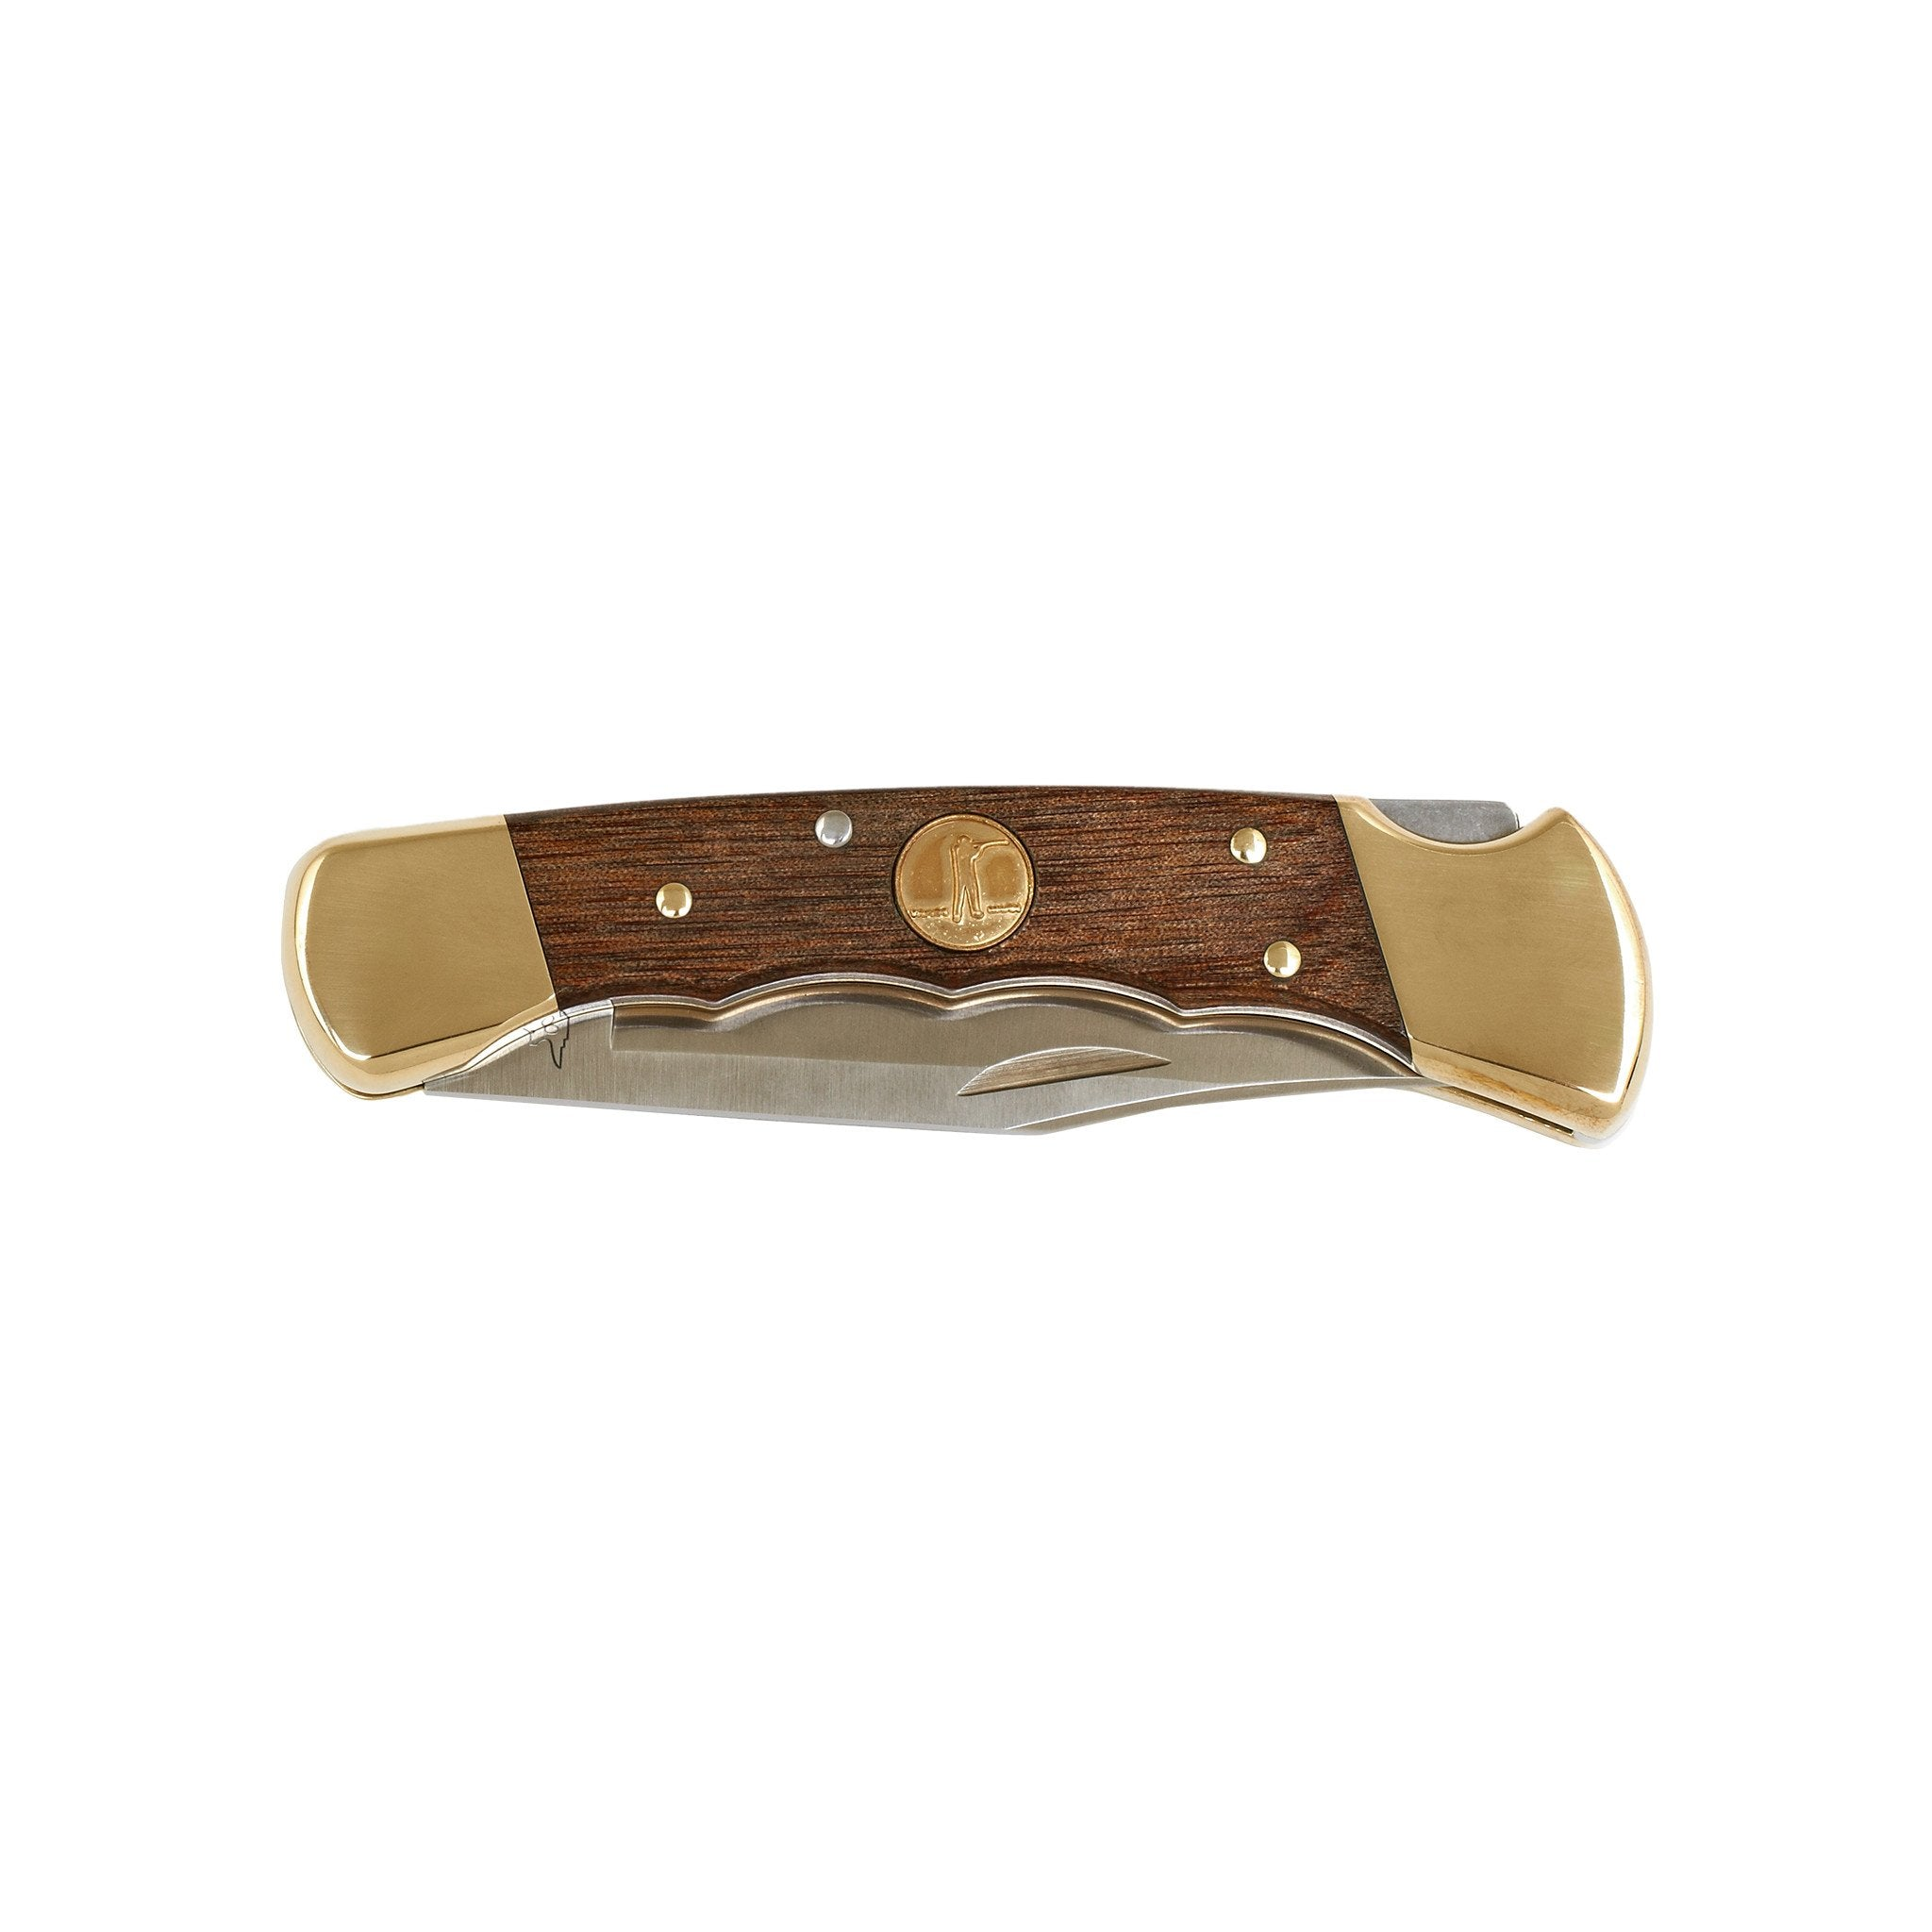 The Folding Hunter Knife, Heritage Walnut